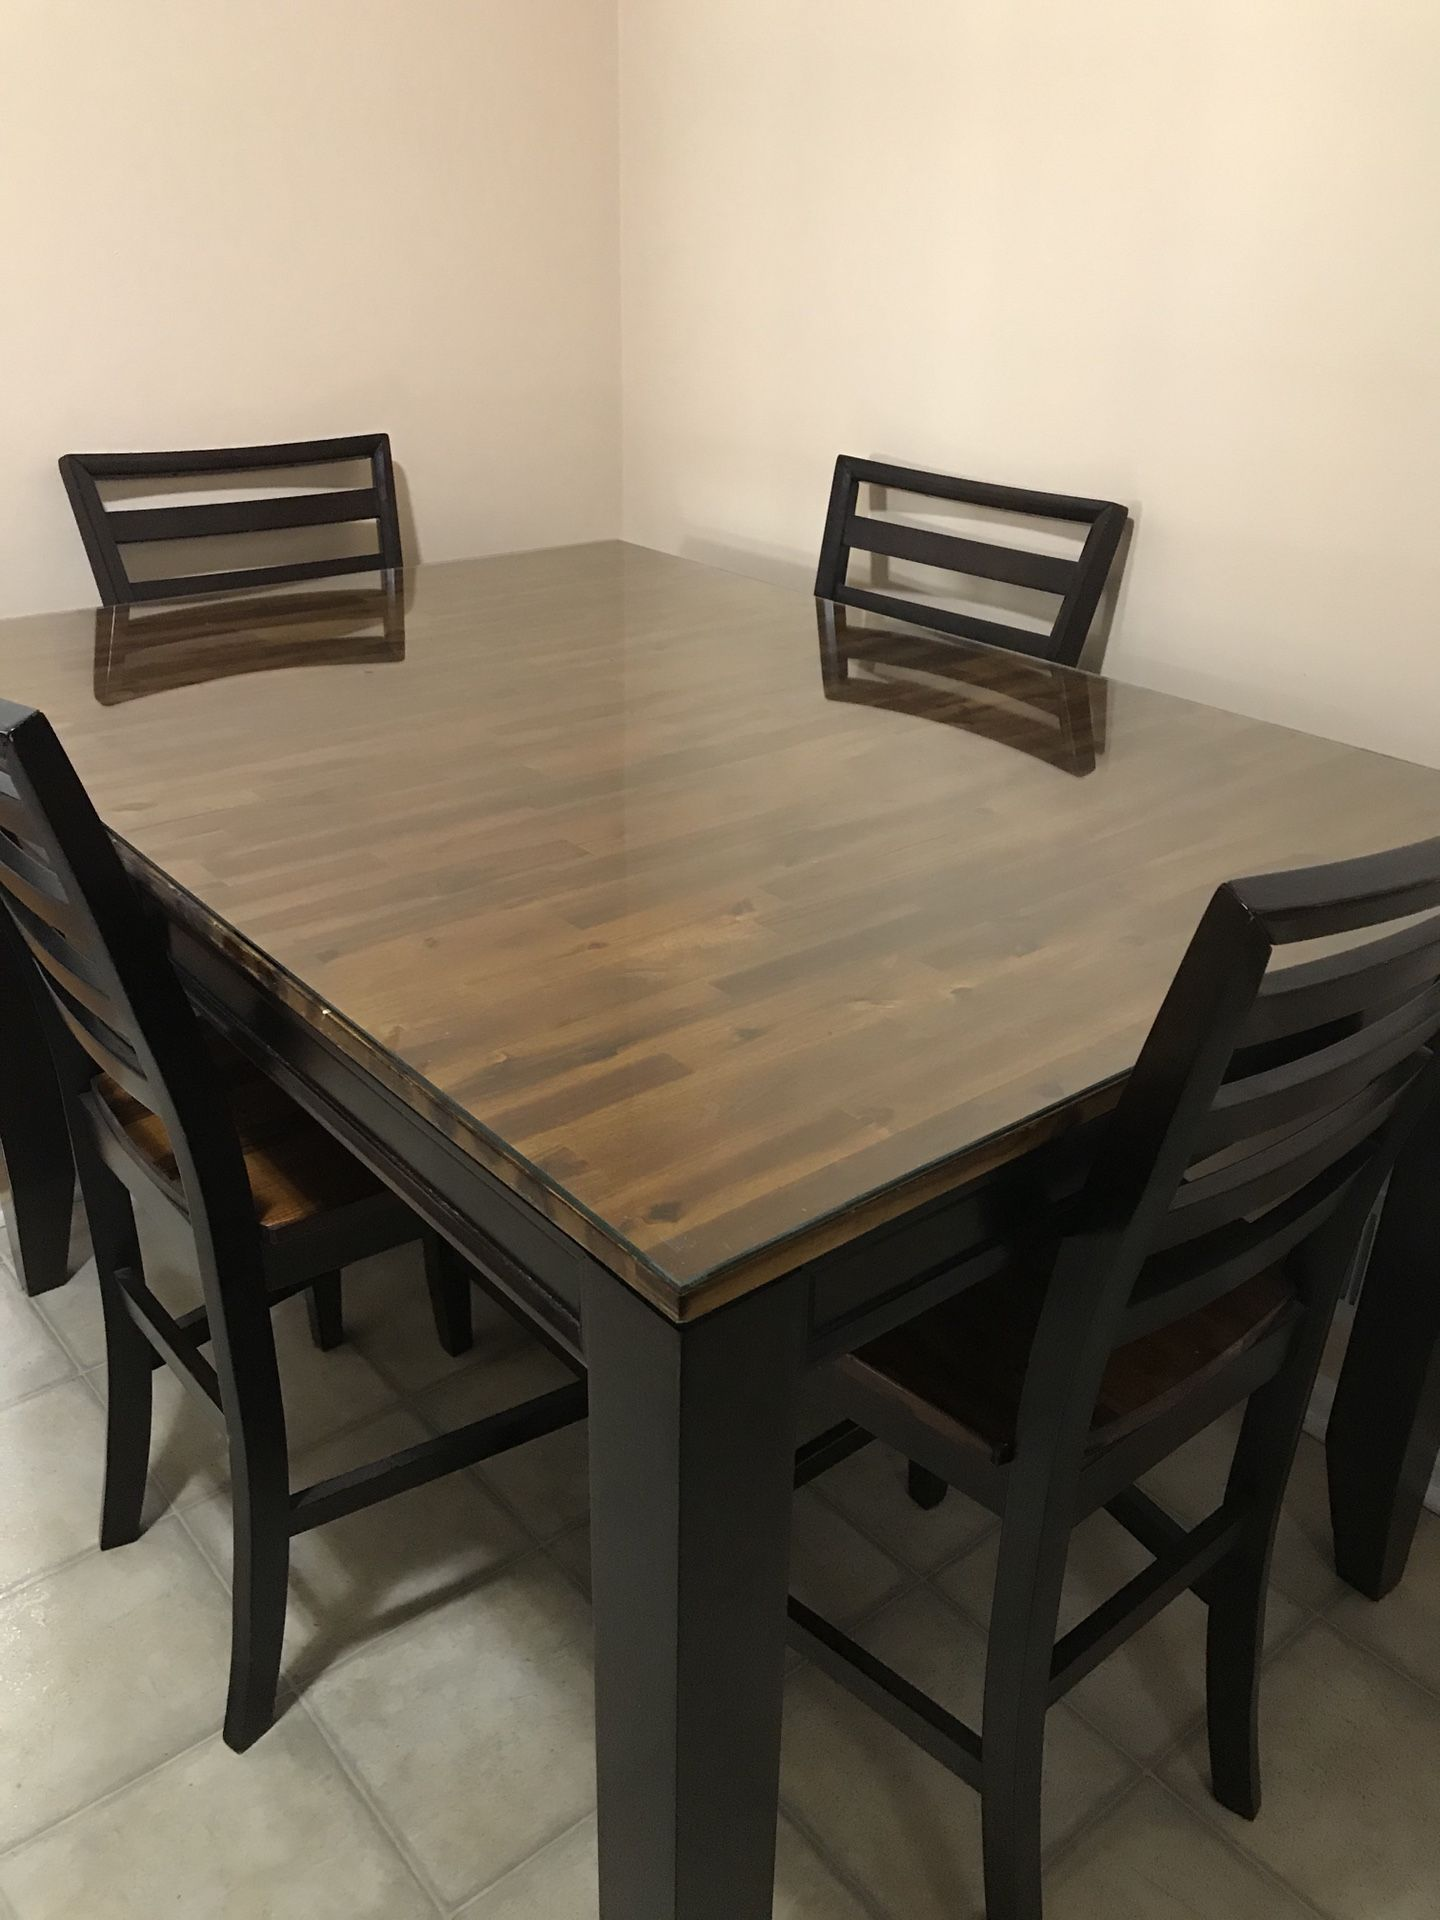 Table with 4 chairs ( expandable for 6 chairs )